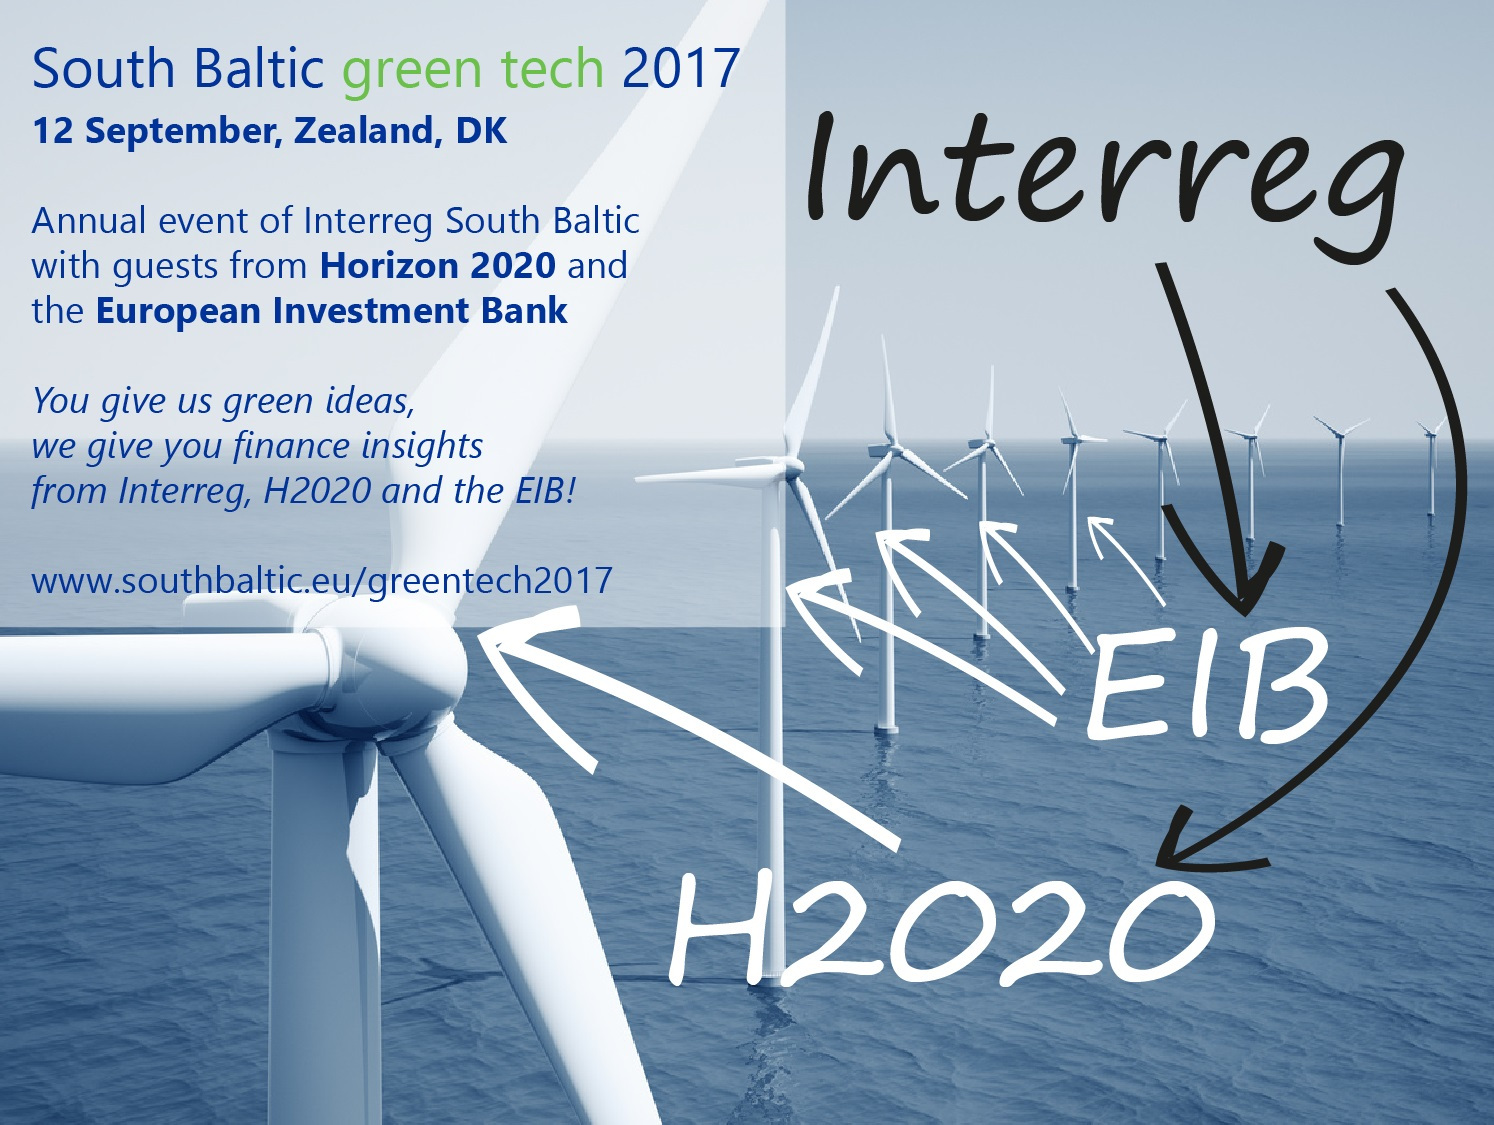 South Baltic green tech event 2017, 12 September, Roskilde University, Denmark